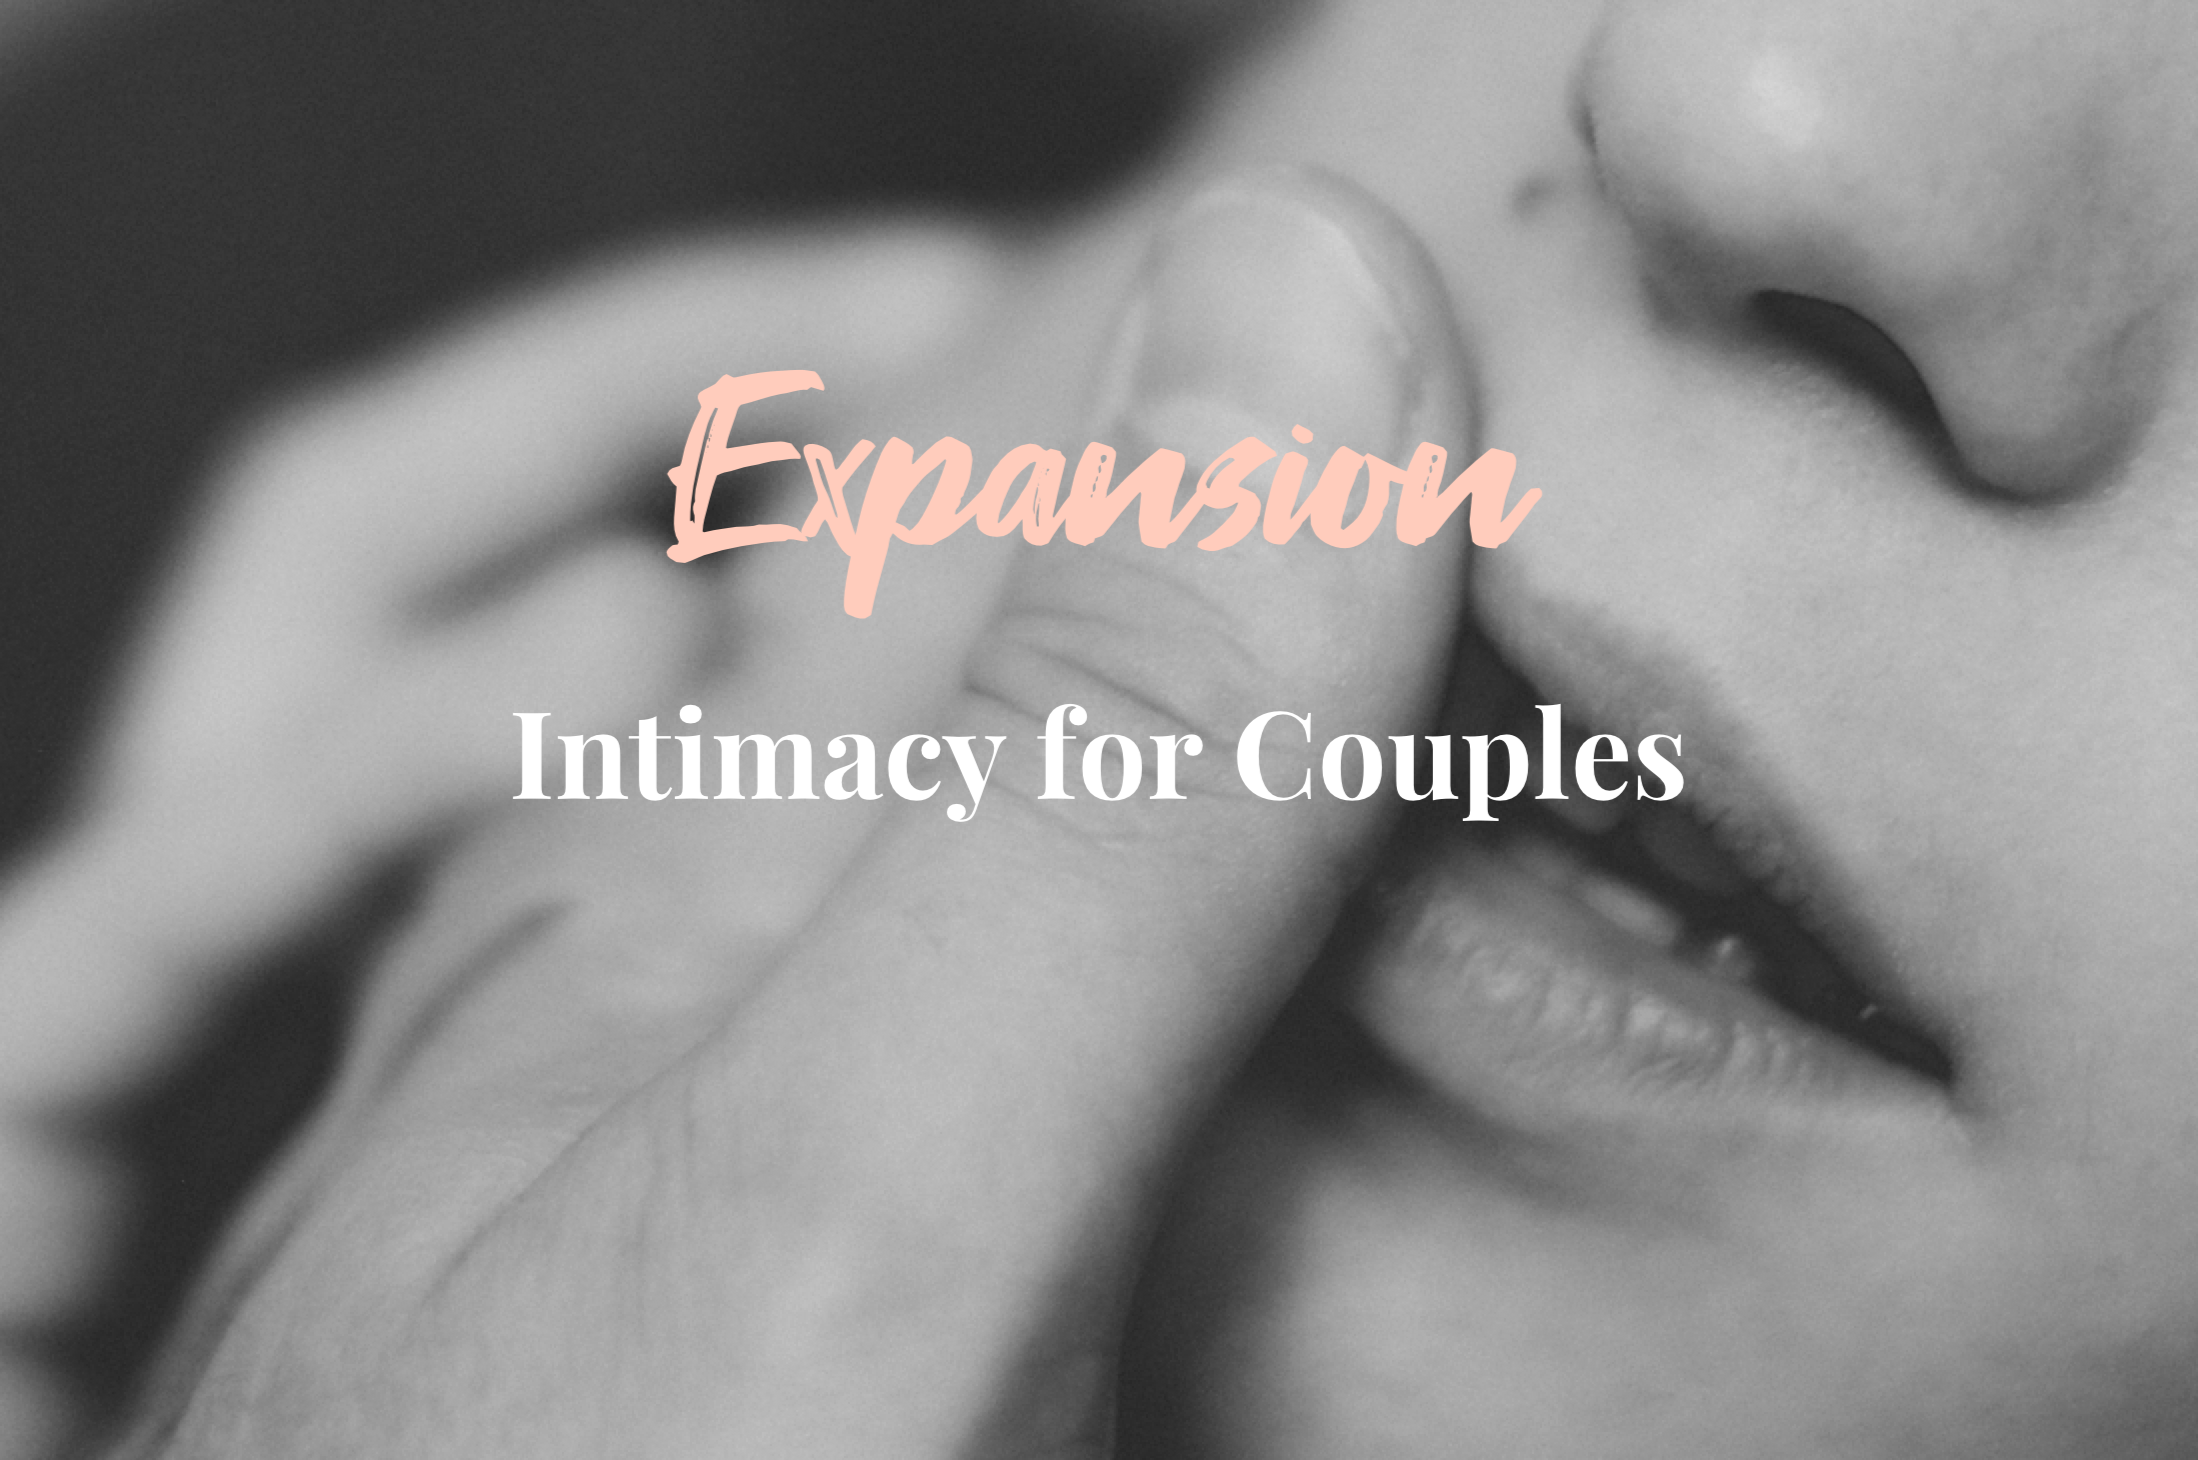 Copy of Expansion: Intimacy for Couples